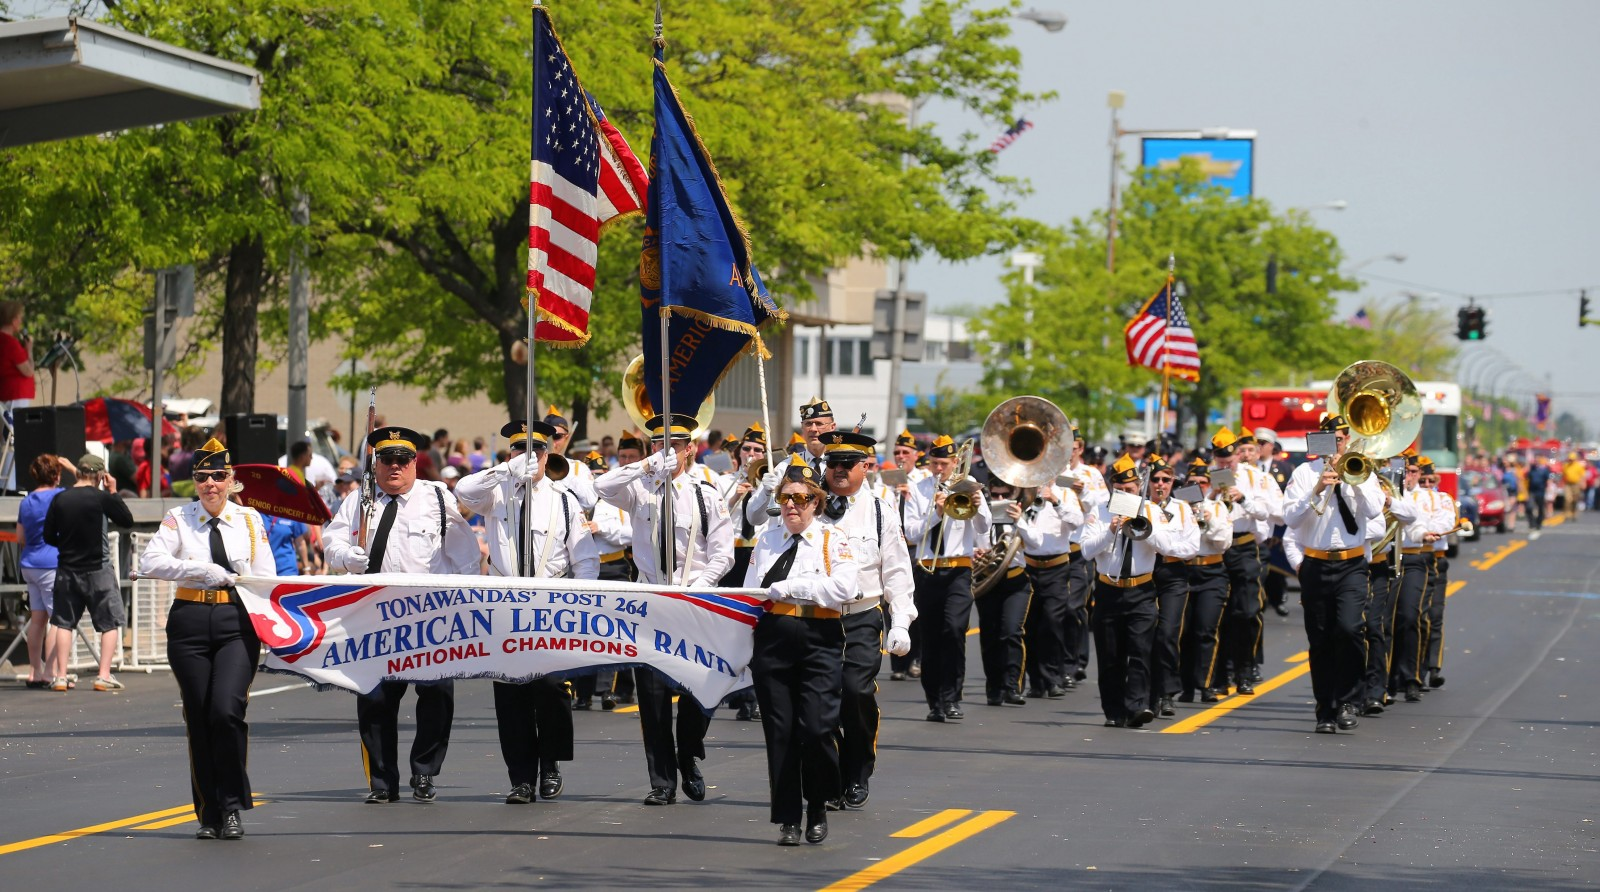 The American Legion Band of the Tonawandas Post 264 march during the Memorial Day parade in Kenmore in 2015. (Mark Mulville/Buffalo News file photo)